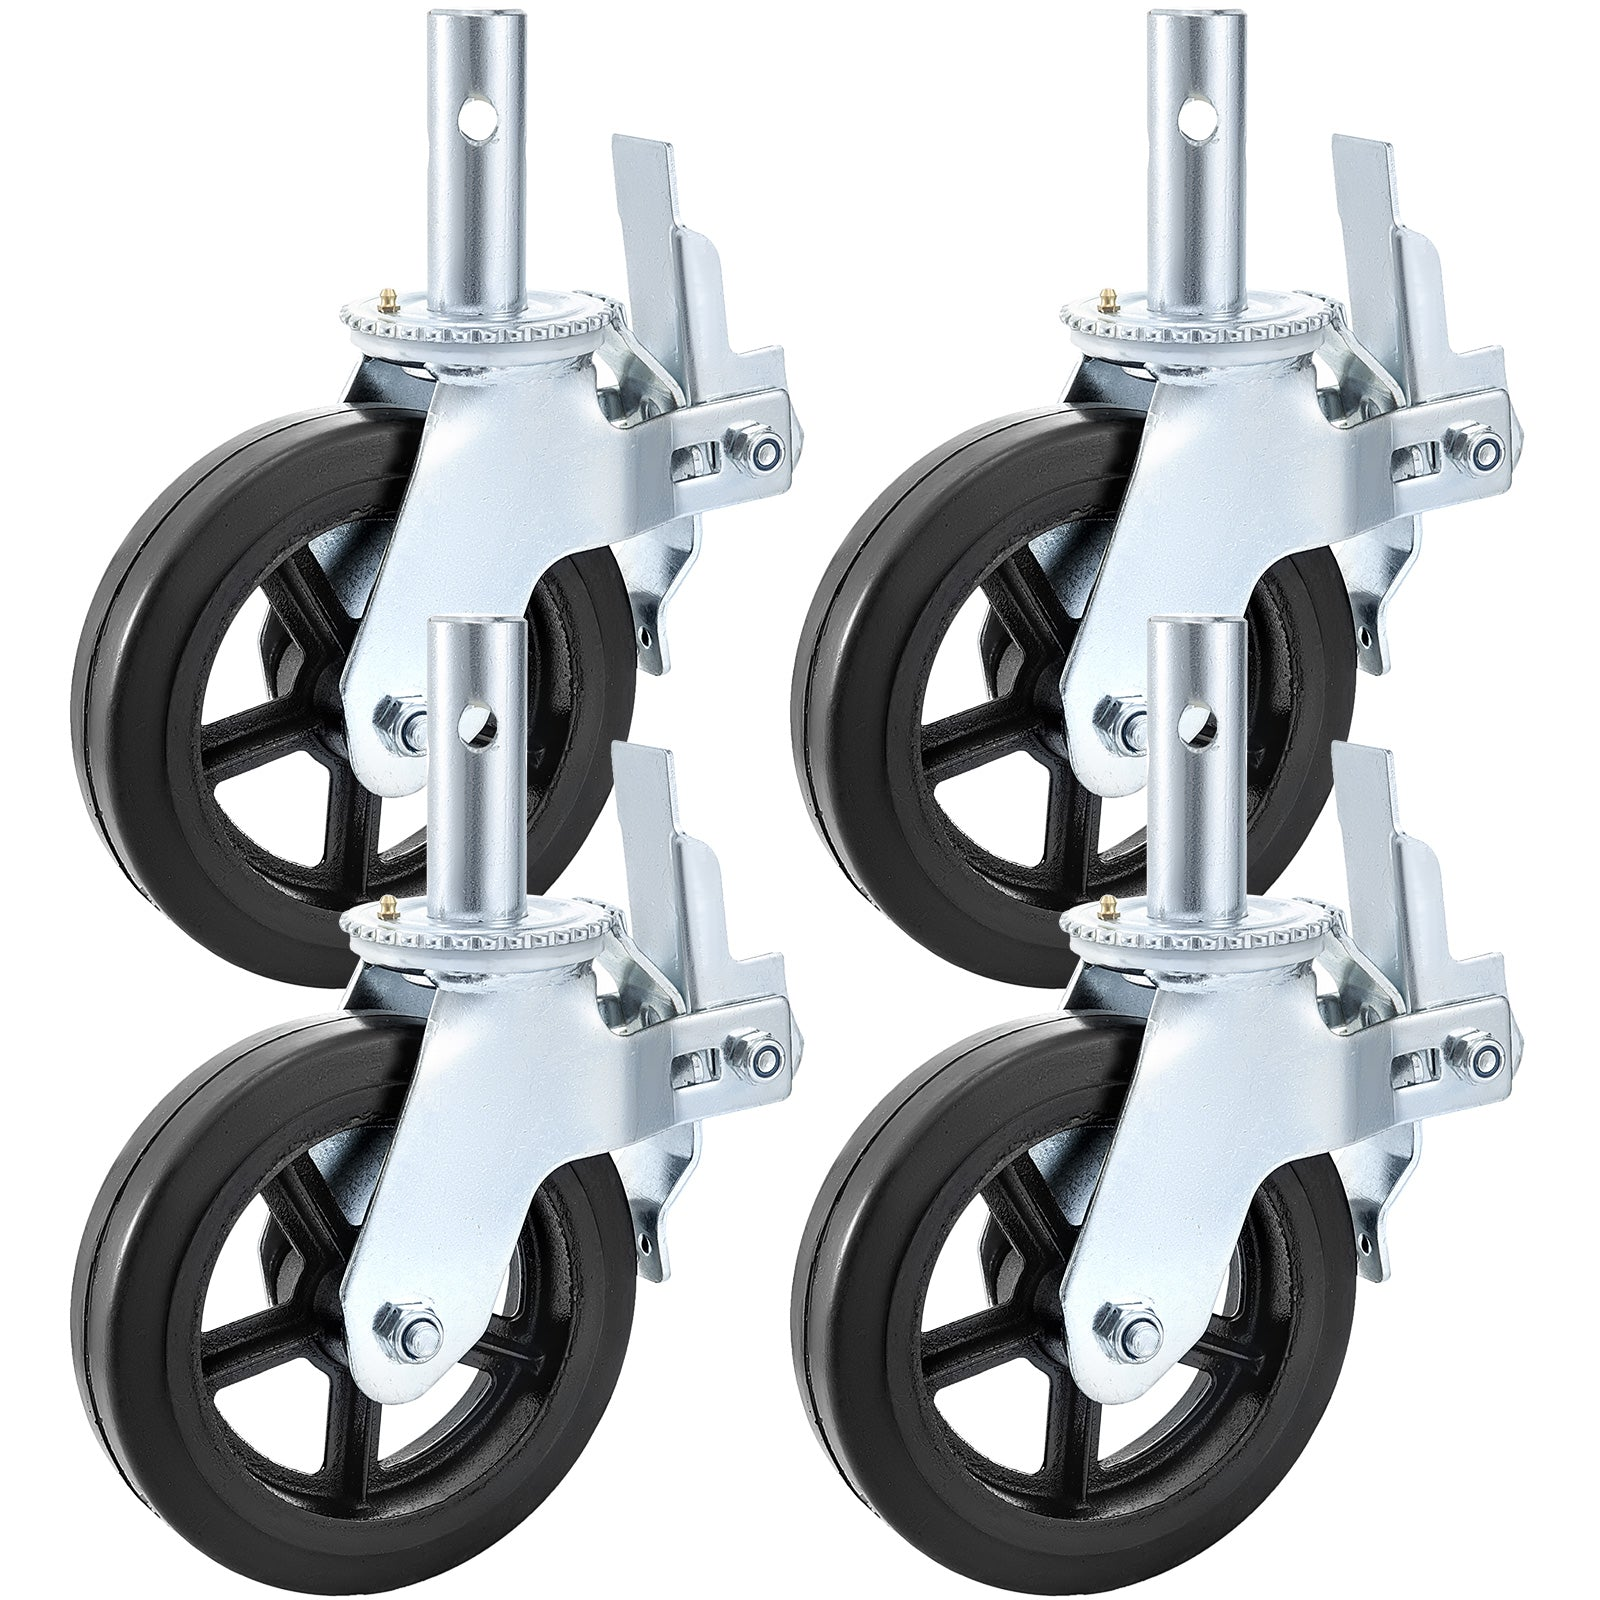 "Scaffolding Casters 8"" X 2"" 4pcs Locking Brakes Swivel Rubber Cast 1100lbs"